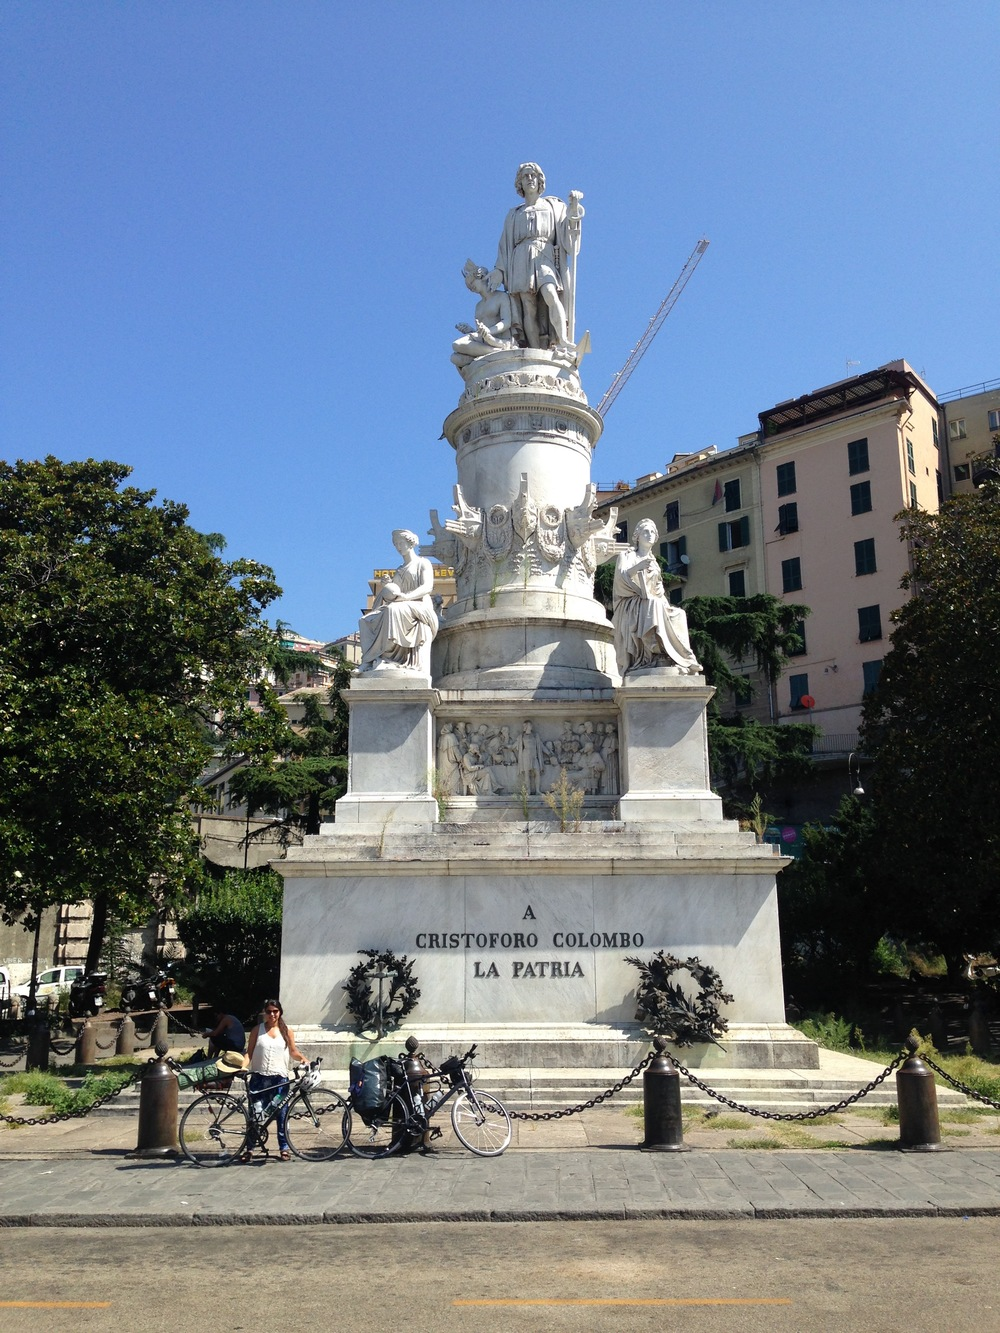 Quick stop in Genoa, once one of the richest cities in Europe and infamous home of Christopher Columbus